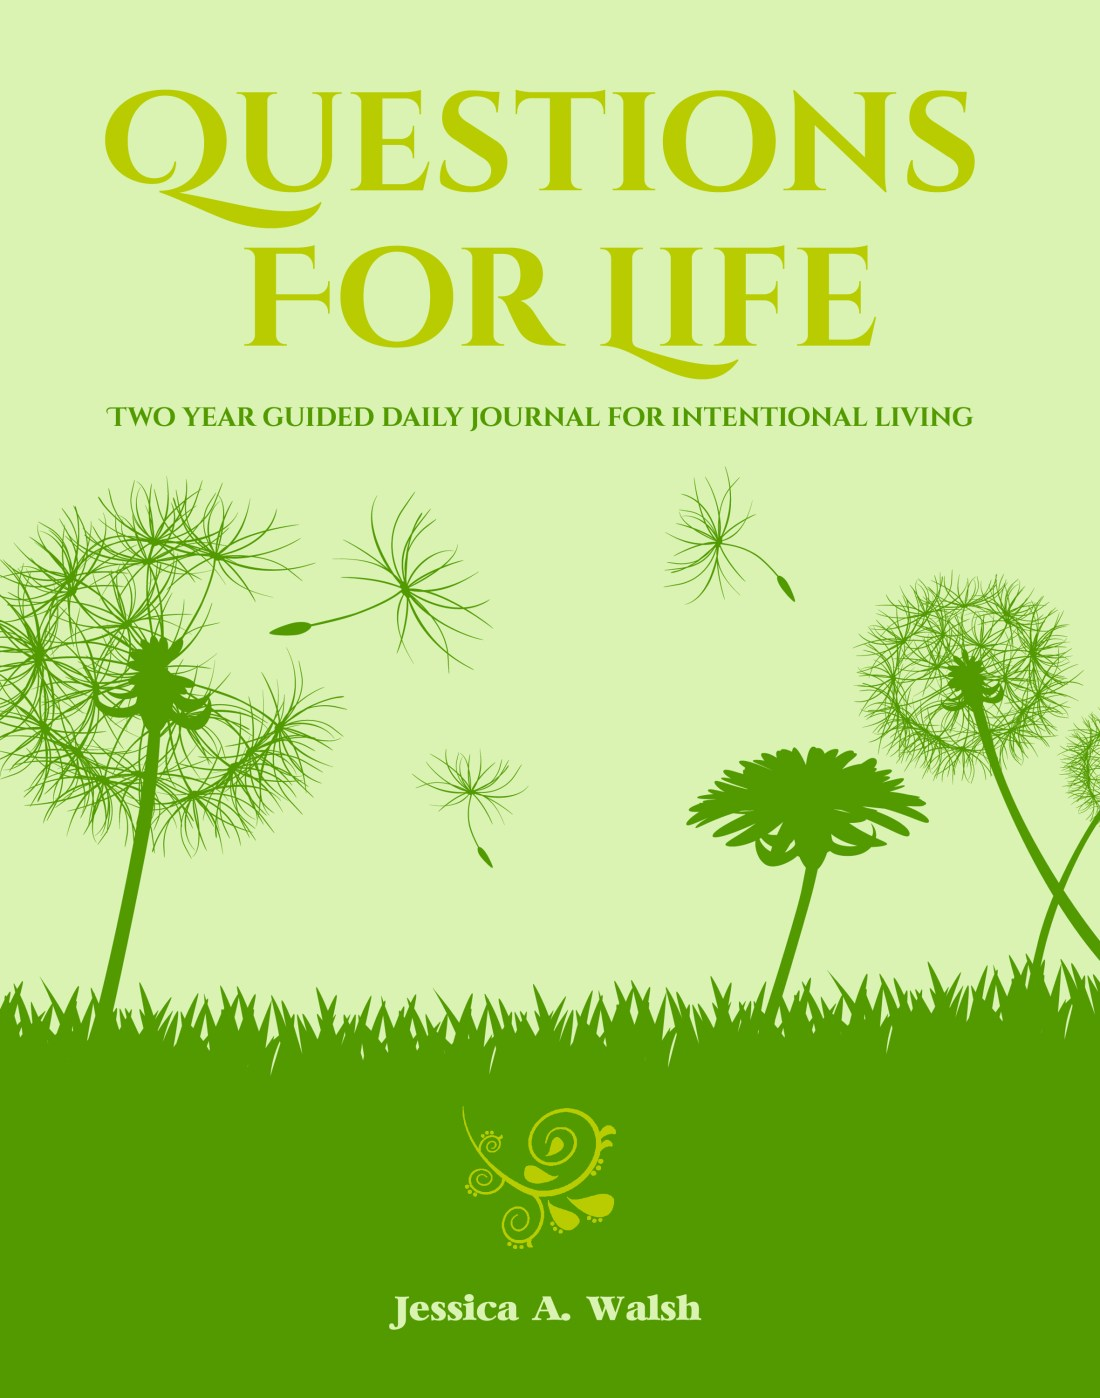 Questions For Life guided journal